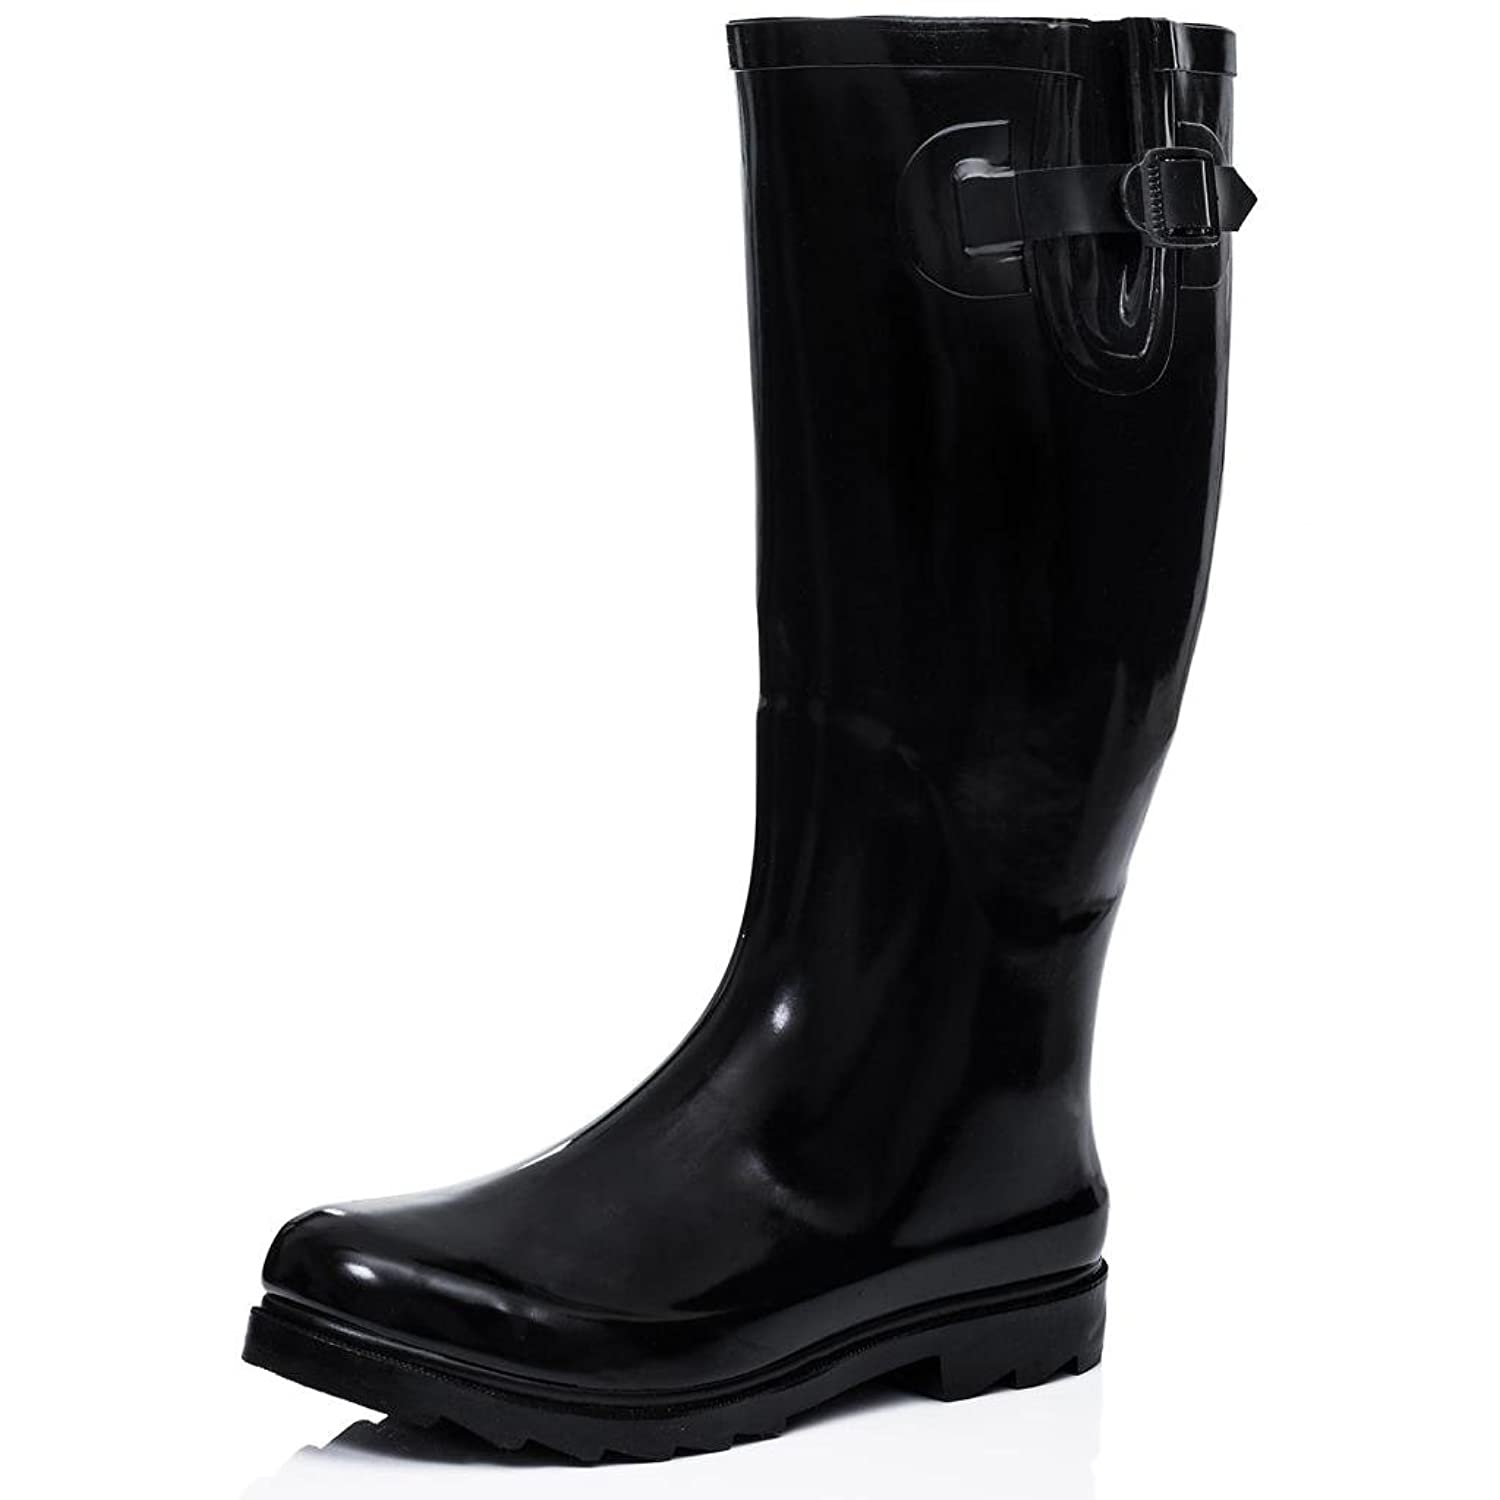 Wellie Wellington Festival Rain Boots - Black Patent - 17.5inch-18.5inch wide calf